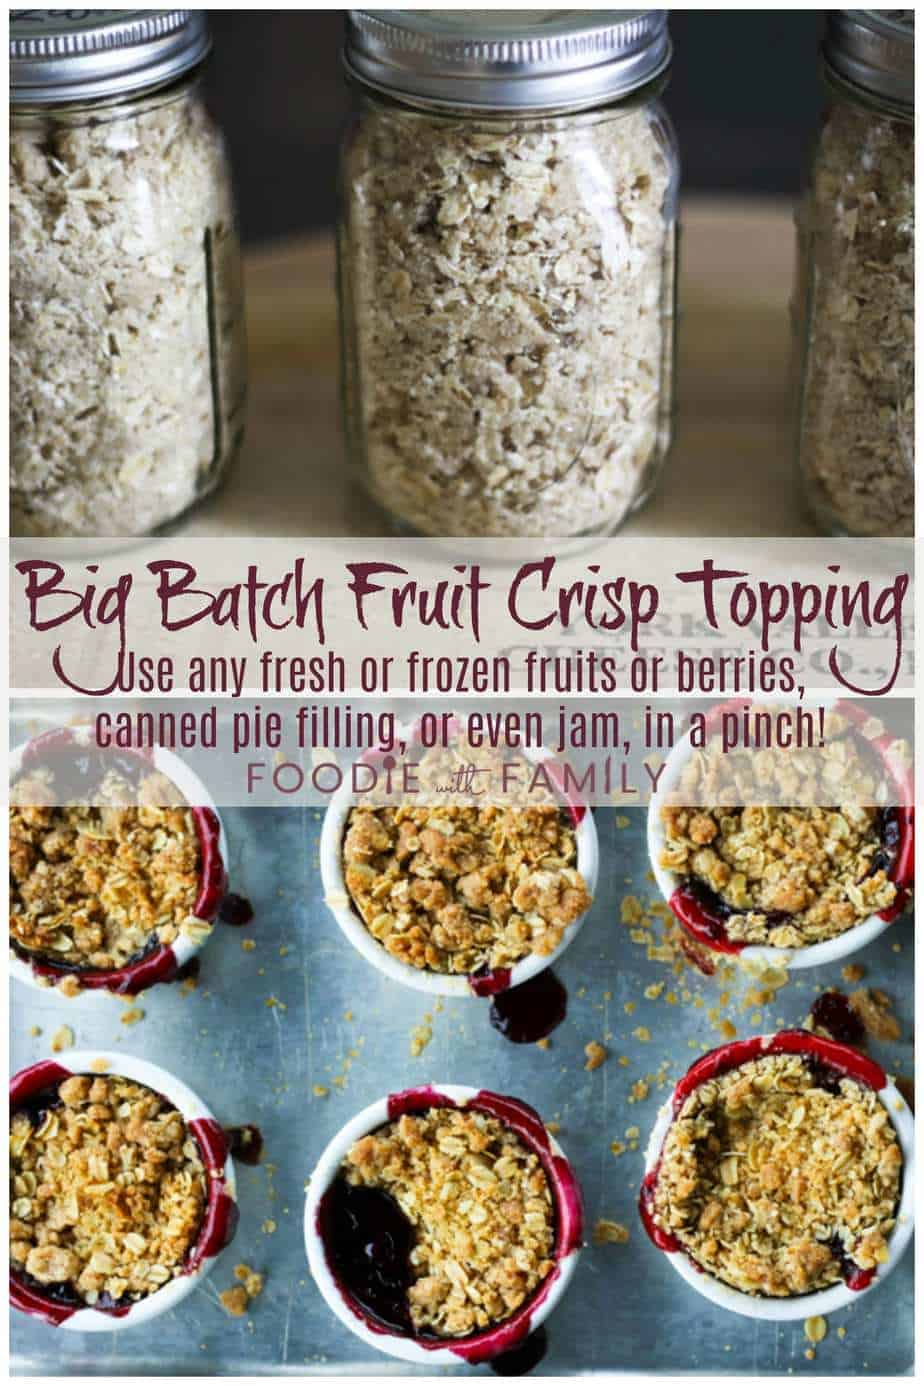 Big Batch Fruit Crisp Topping: Use your pre-made crisp topping on fresh fruit, canned fruit or pie filling for the best, glorious, almost instant fruit crisp.The only thing better than a fruit crisp is one that you've put together in less than 5 minutes using crisp topping that you made ahead of time in a big batch and stored in the freezer.